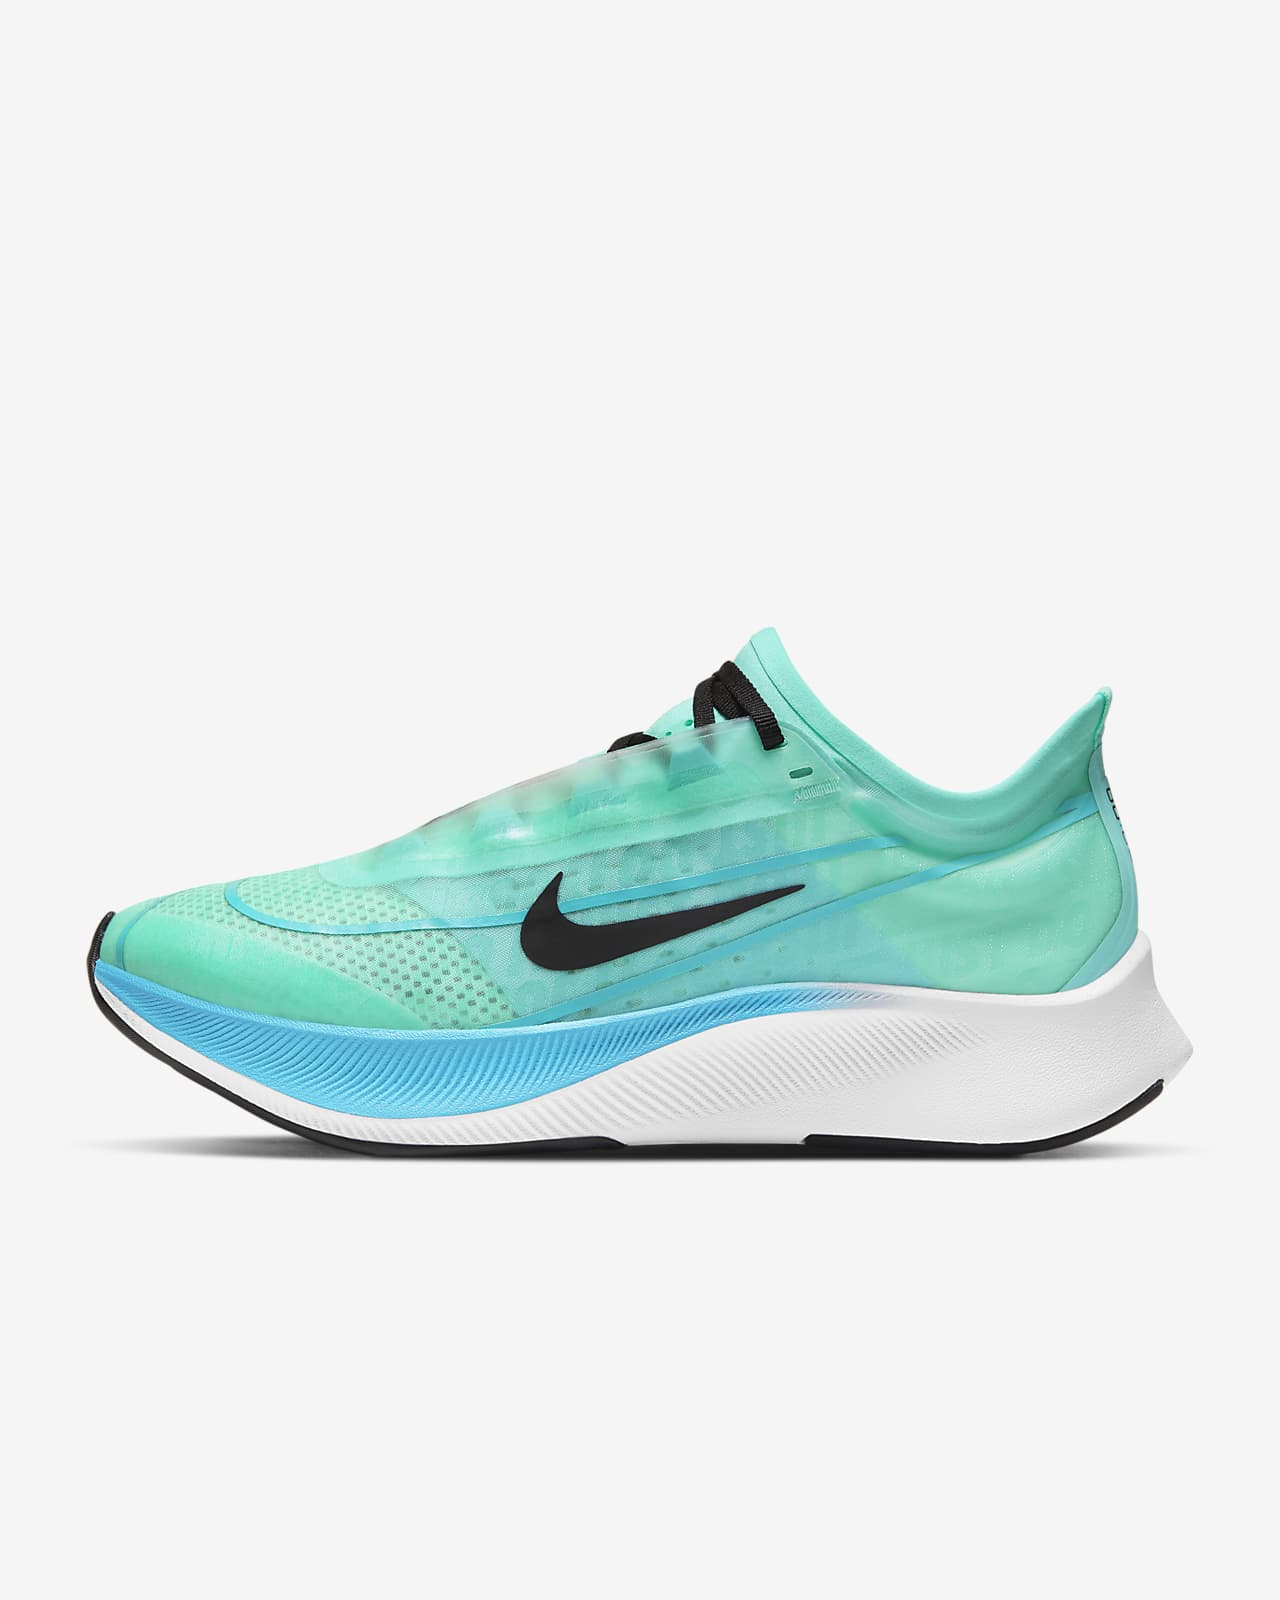 Nike Zoom Fly 3 Women's Road Running Shoes